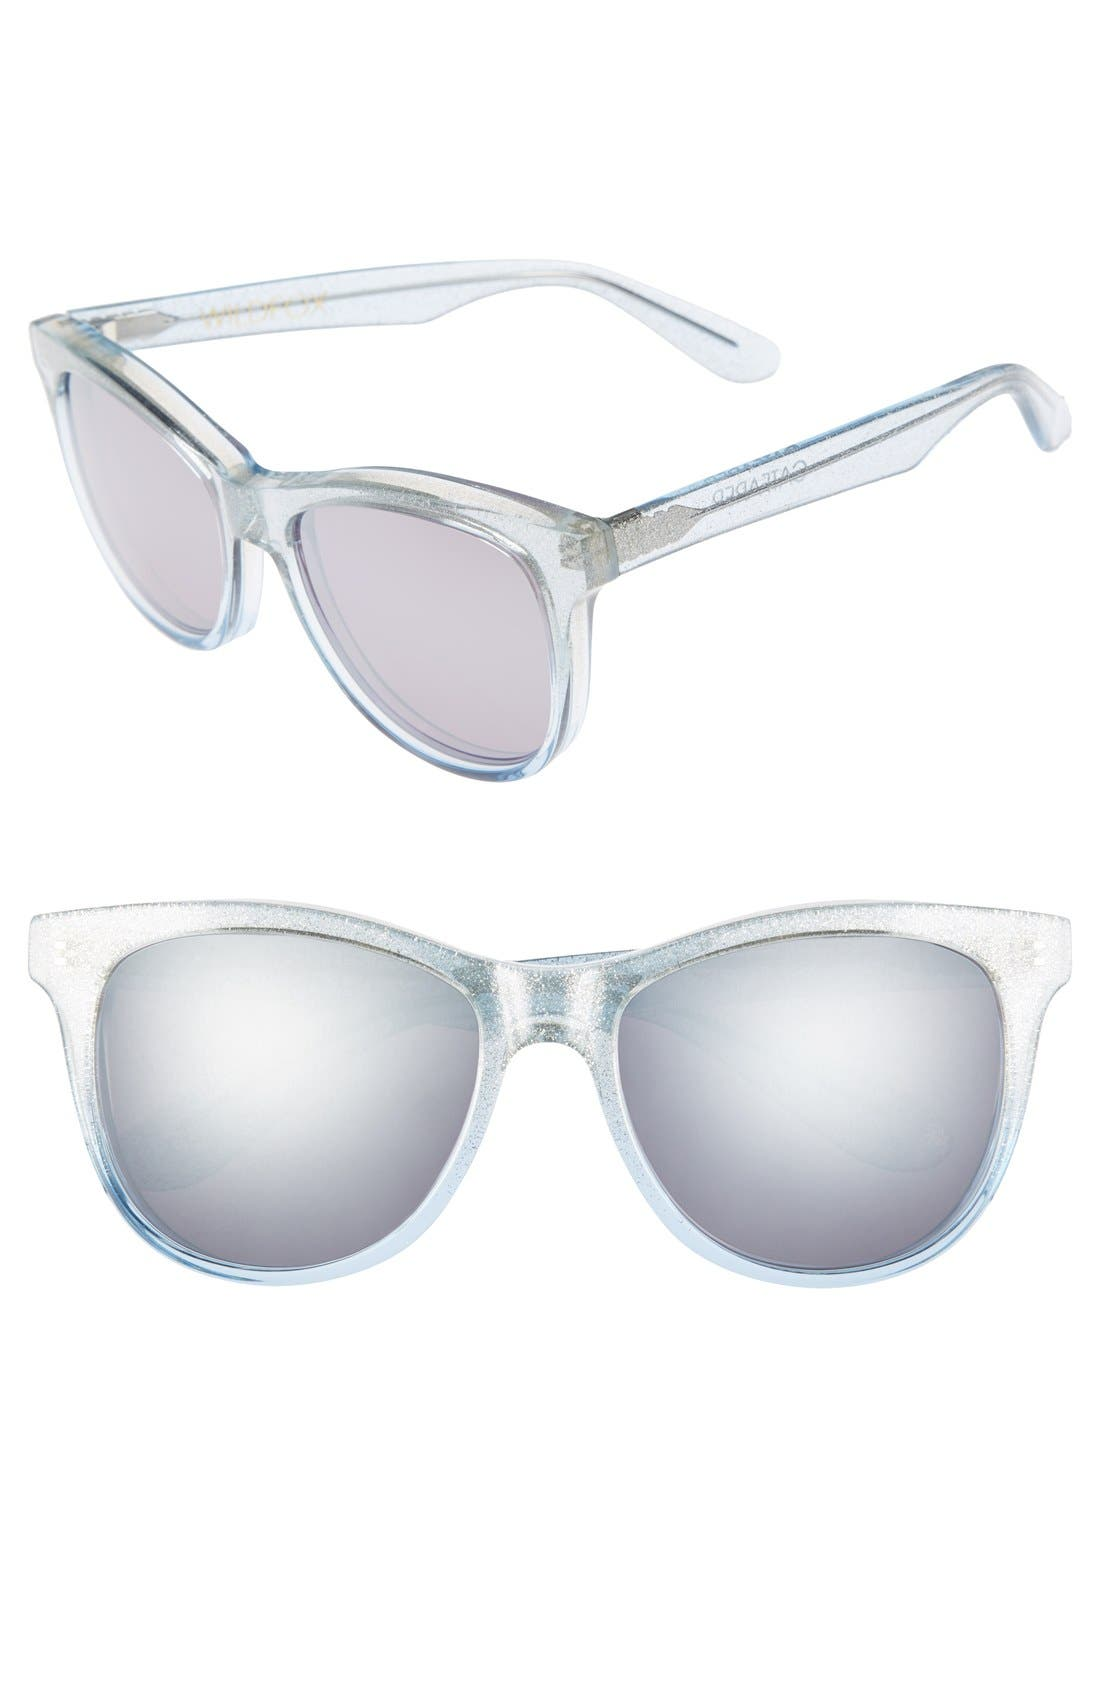 Alternate Image 1 Selected - Wildfox 'Catfarer Deluxe' 53mm Sunglasses